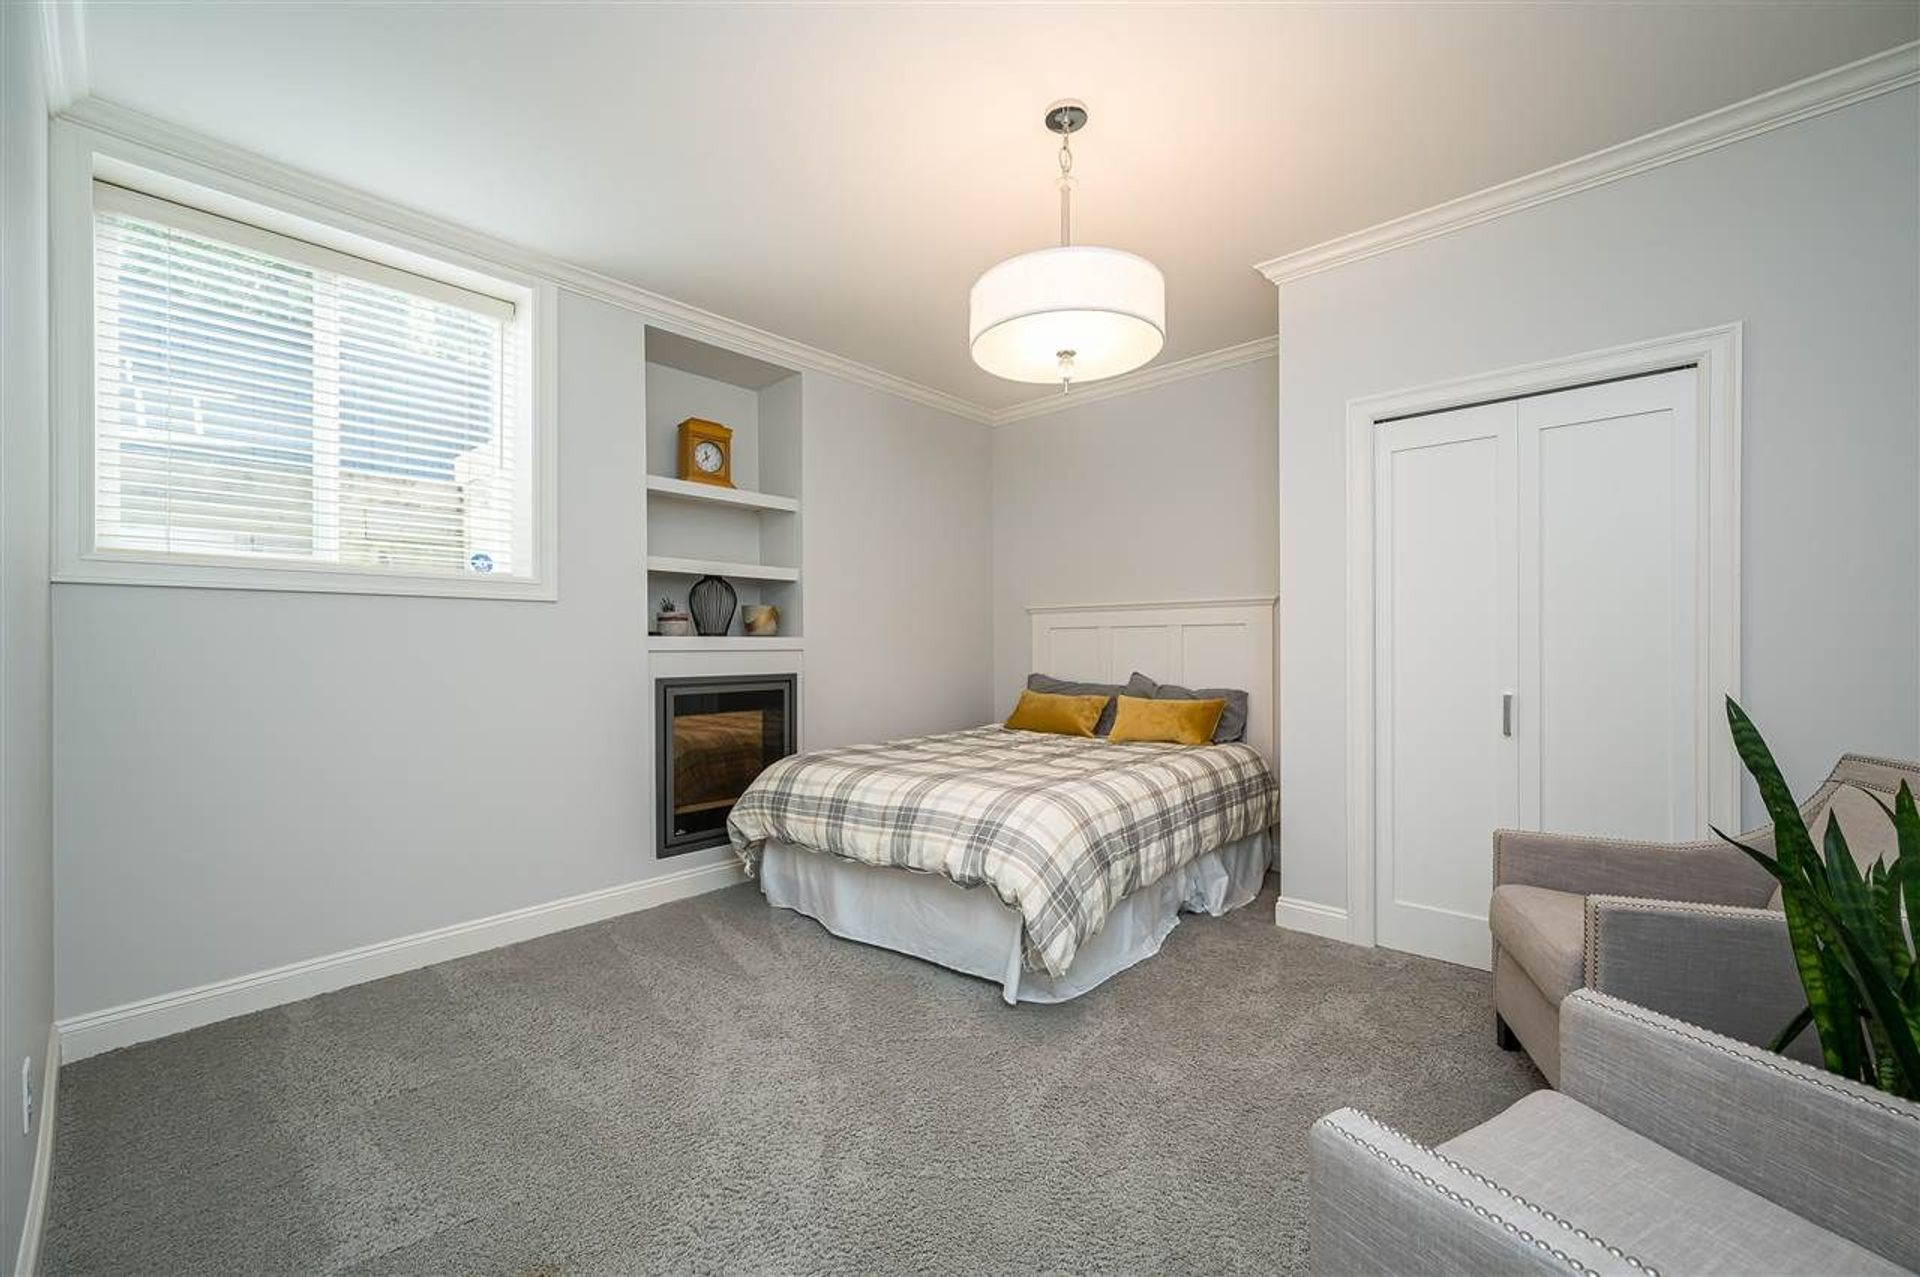 16503-111-avenue-fraser-heights-north-surrey-34 at 16503 111 Avenue, Fraser Heights, North Surrey